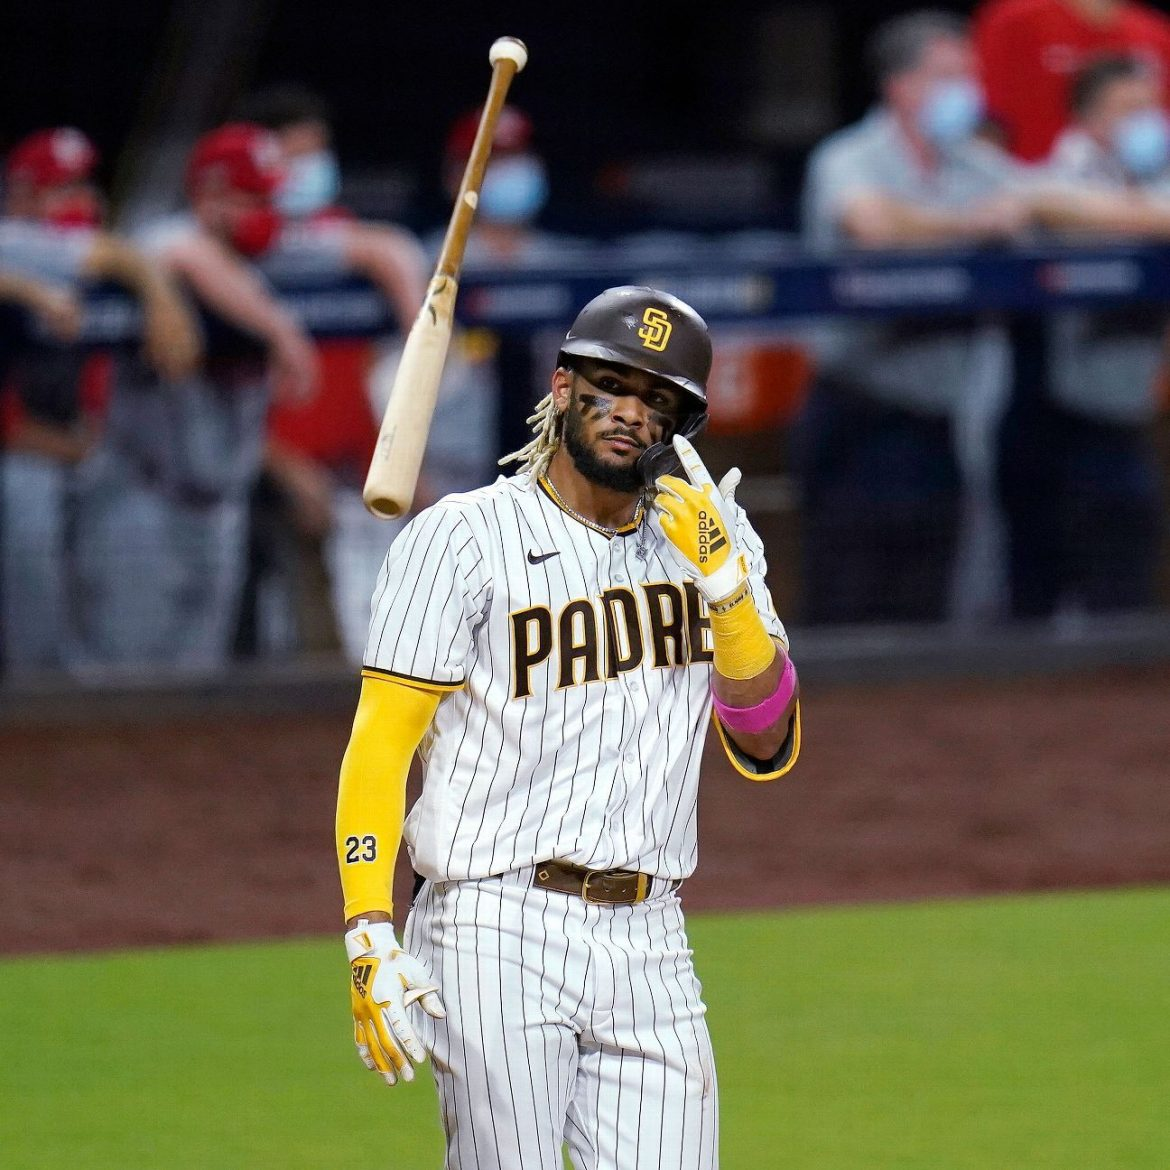 Tatis Jr. on deal: 'I want the statue on one team'